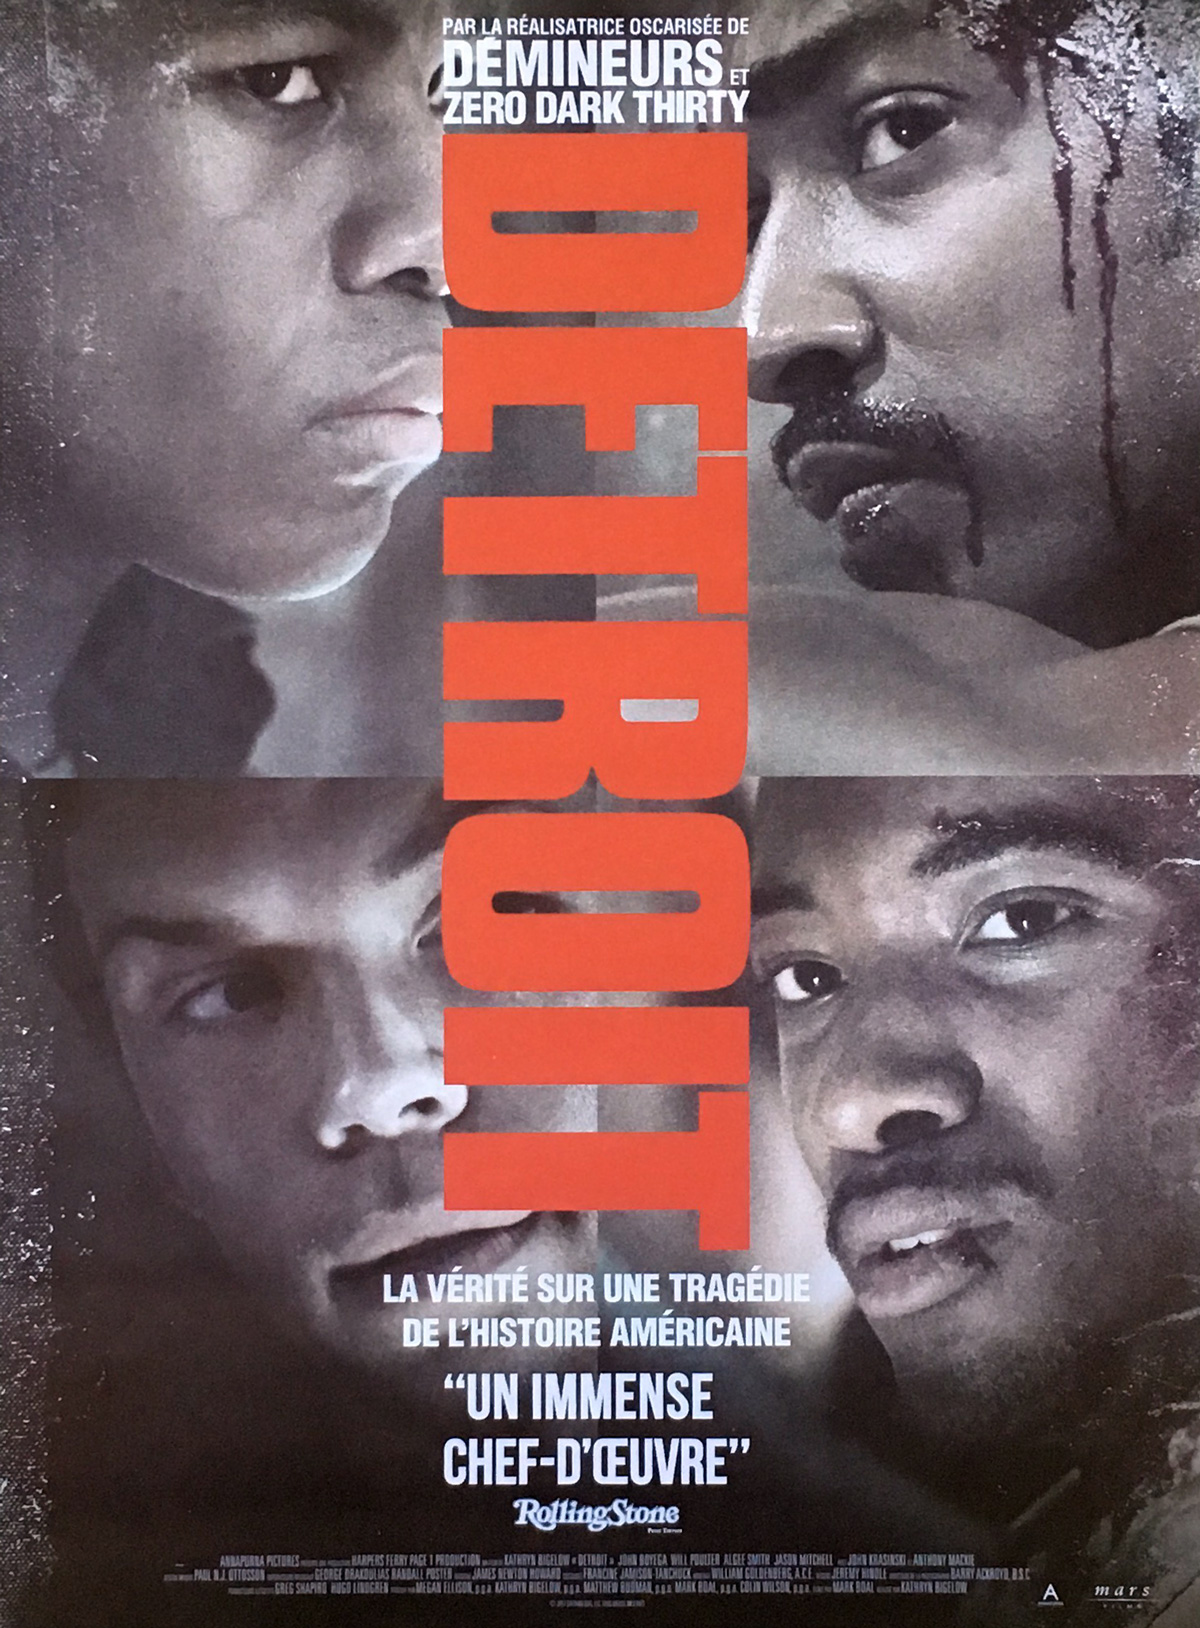 detroit-movie-poster-15x21-in-2017-kathryn-bigelow-john-boyega.jpg